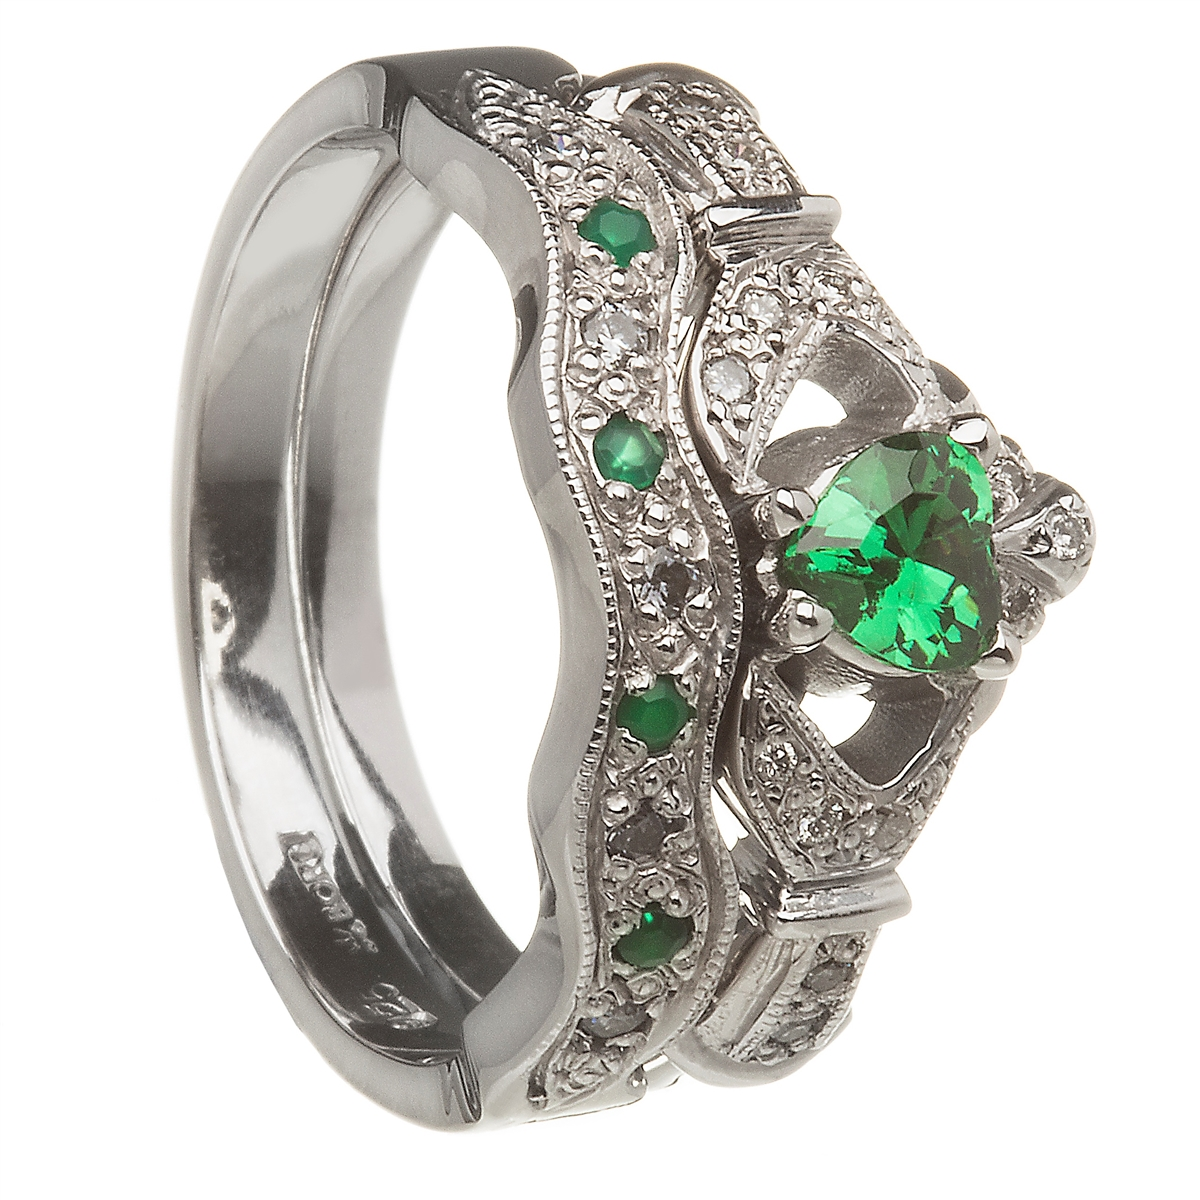 14k white gold emerald set heart claddagh ring wedding ring set - 14k Gold Wedding Ring Sets